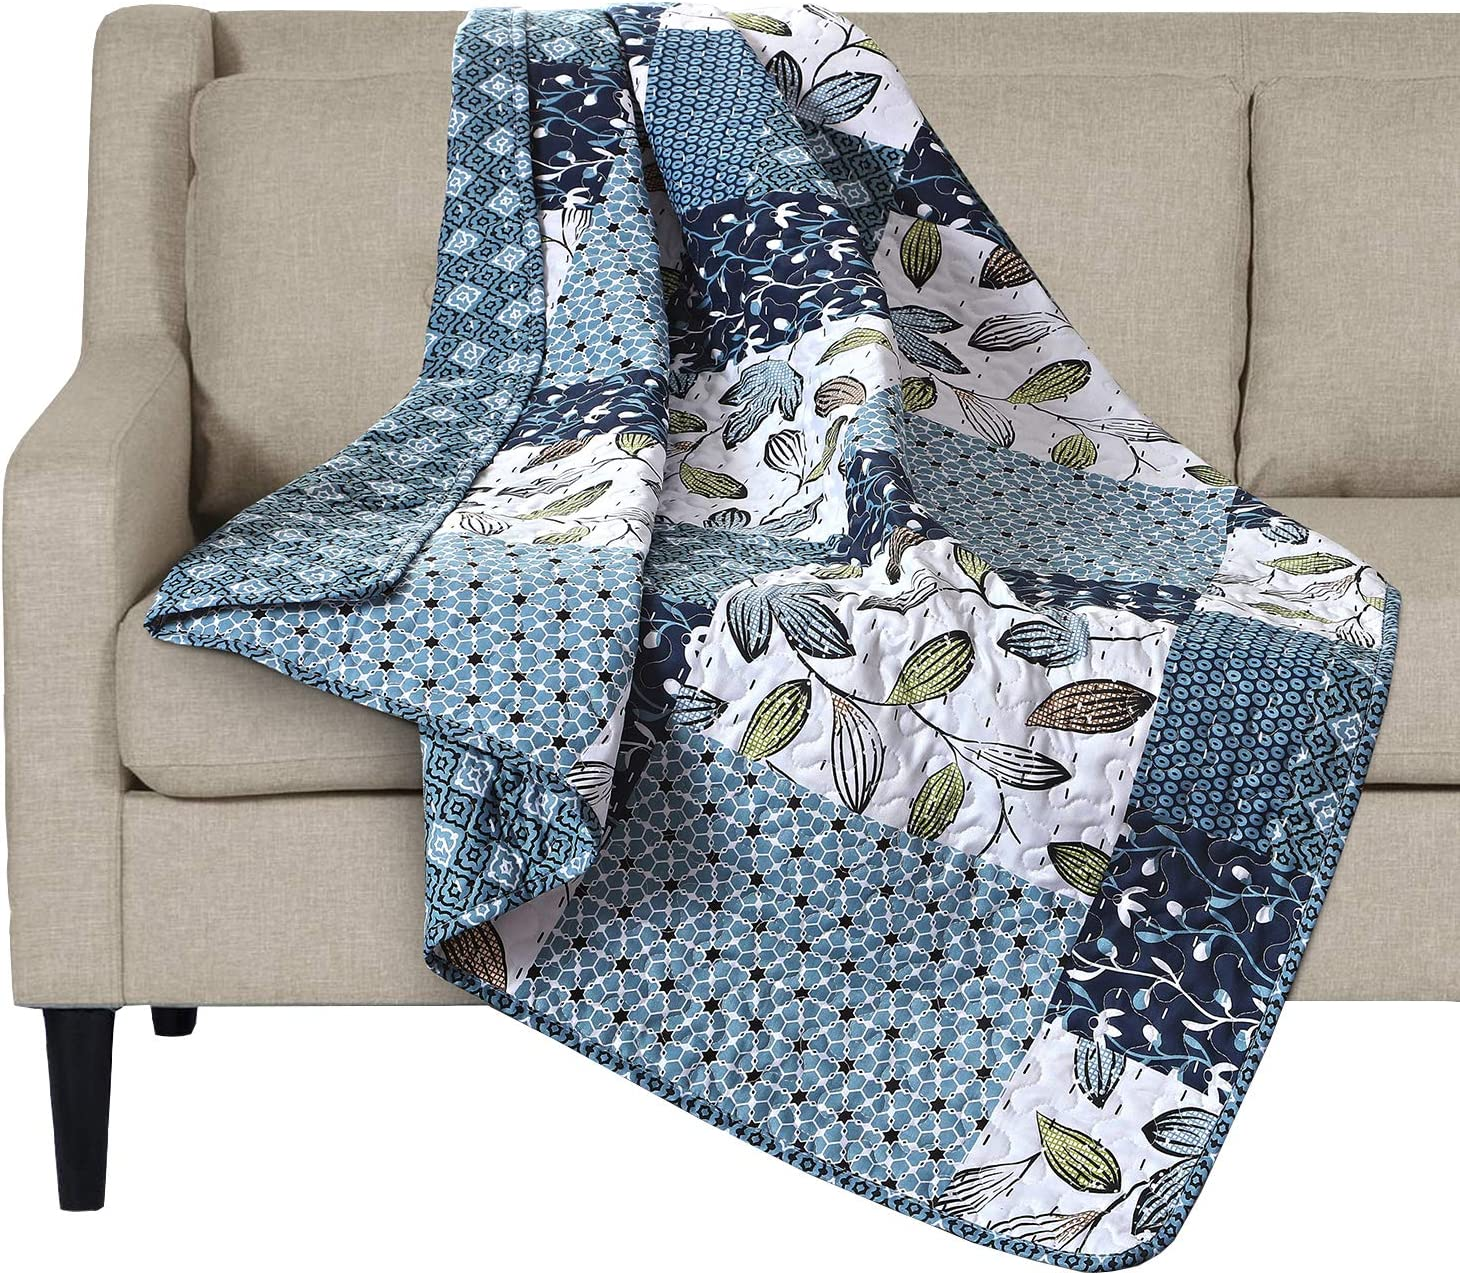 Quilt Blanket Printing in US White Christmas Version 1 Fleece Blanket